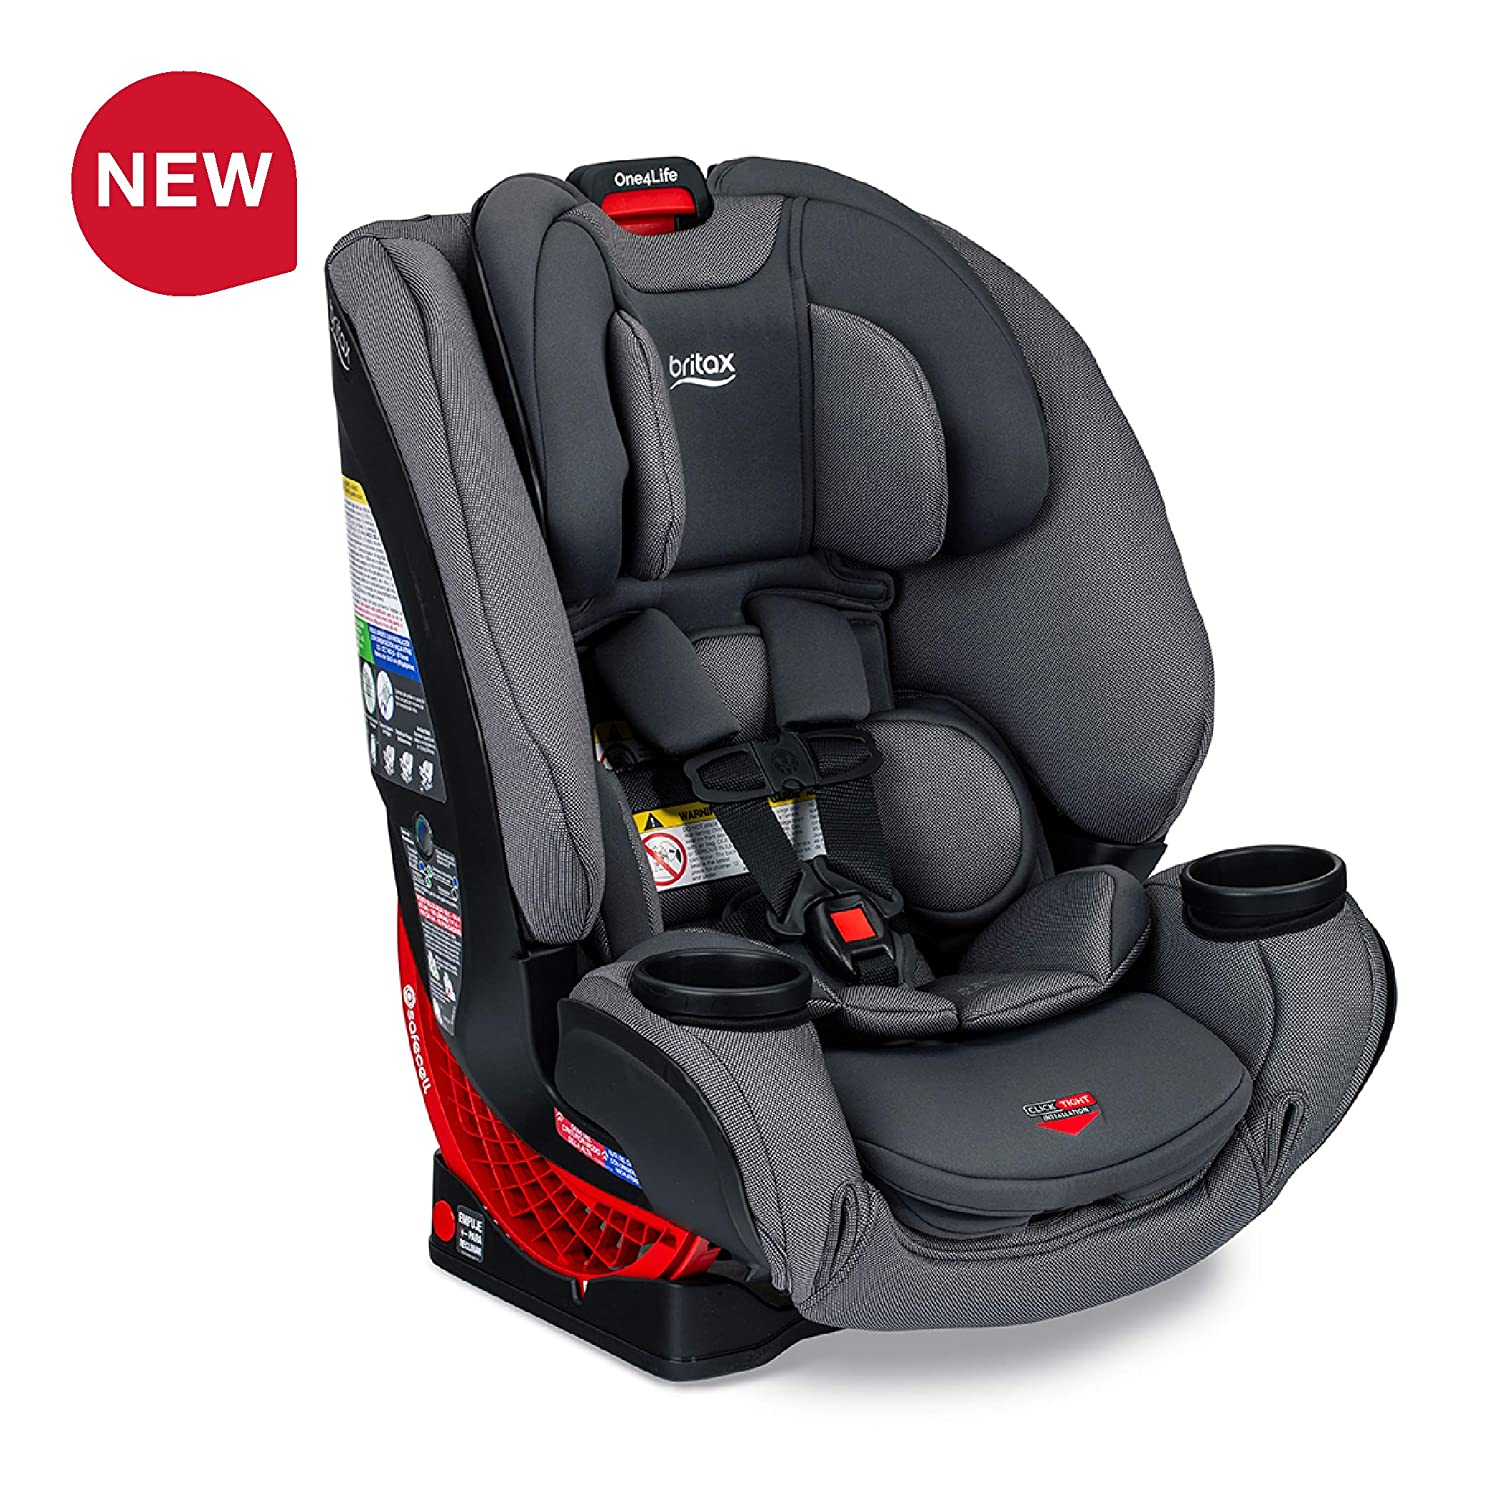 Admirable Britax One4Life Clicktight All In One Car Seat 10 Years Of Use Infant Convertible Booster 5 To 120 Pounds Safewash Fabric Drift Dailytribune Chair Design For Home Dailytribuneorg